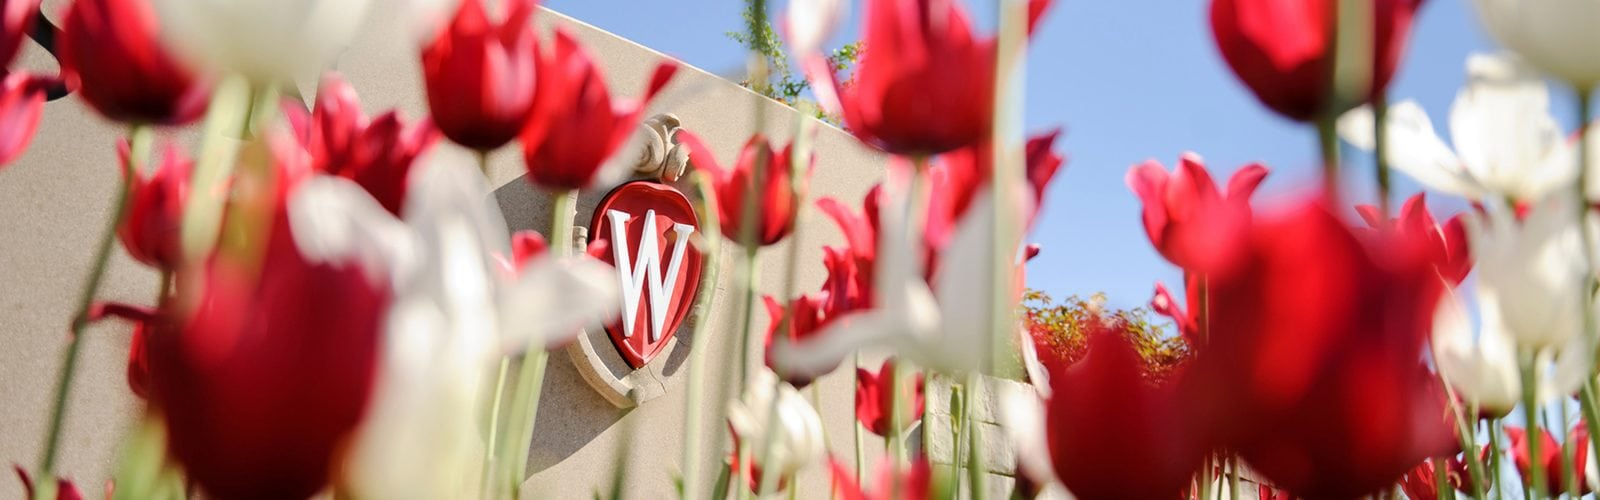 Flowering red and white tulips